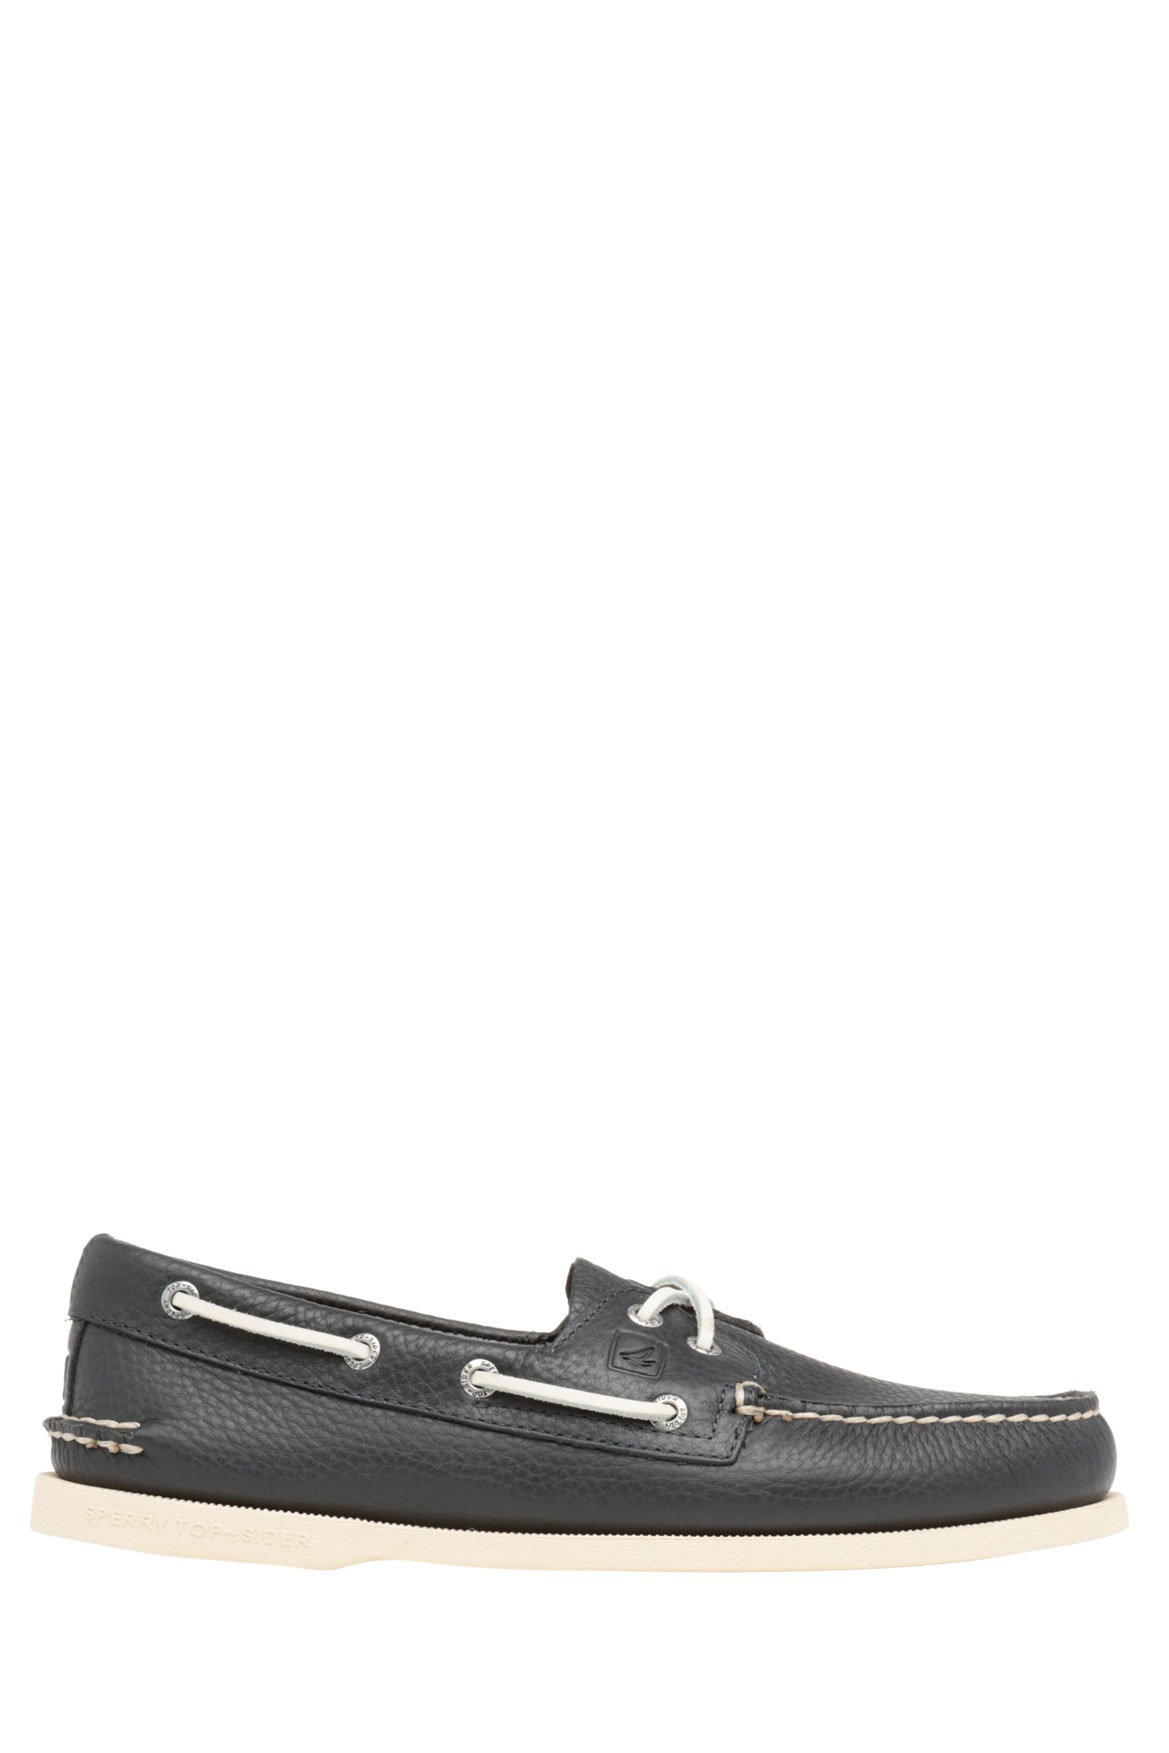 care for sperry top-sider shoes a \/oliver-kludjeson